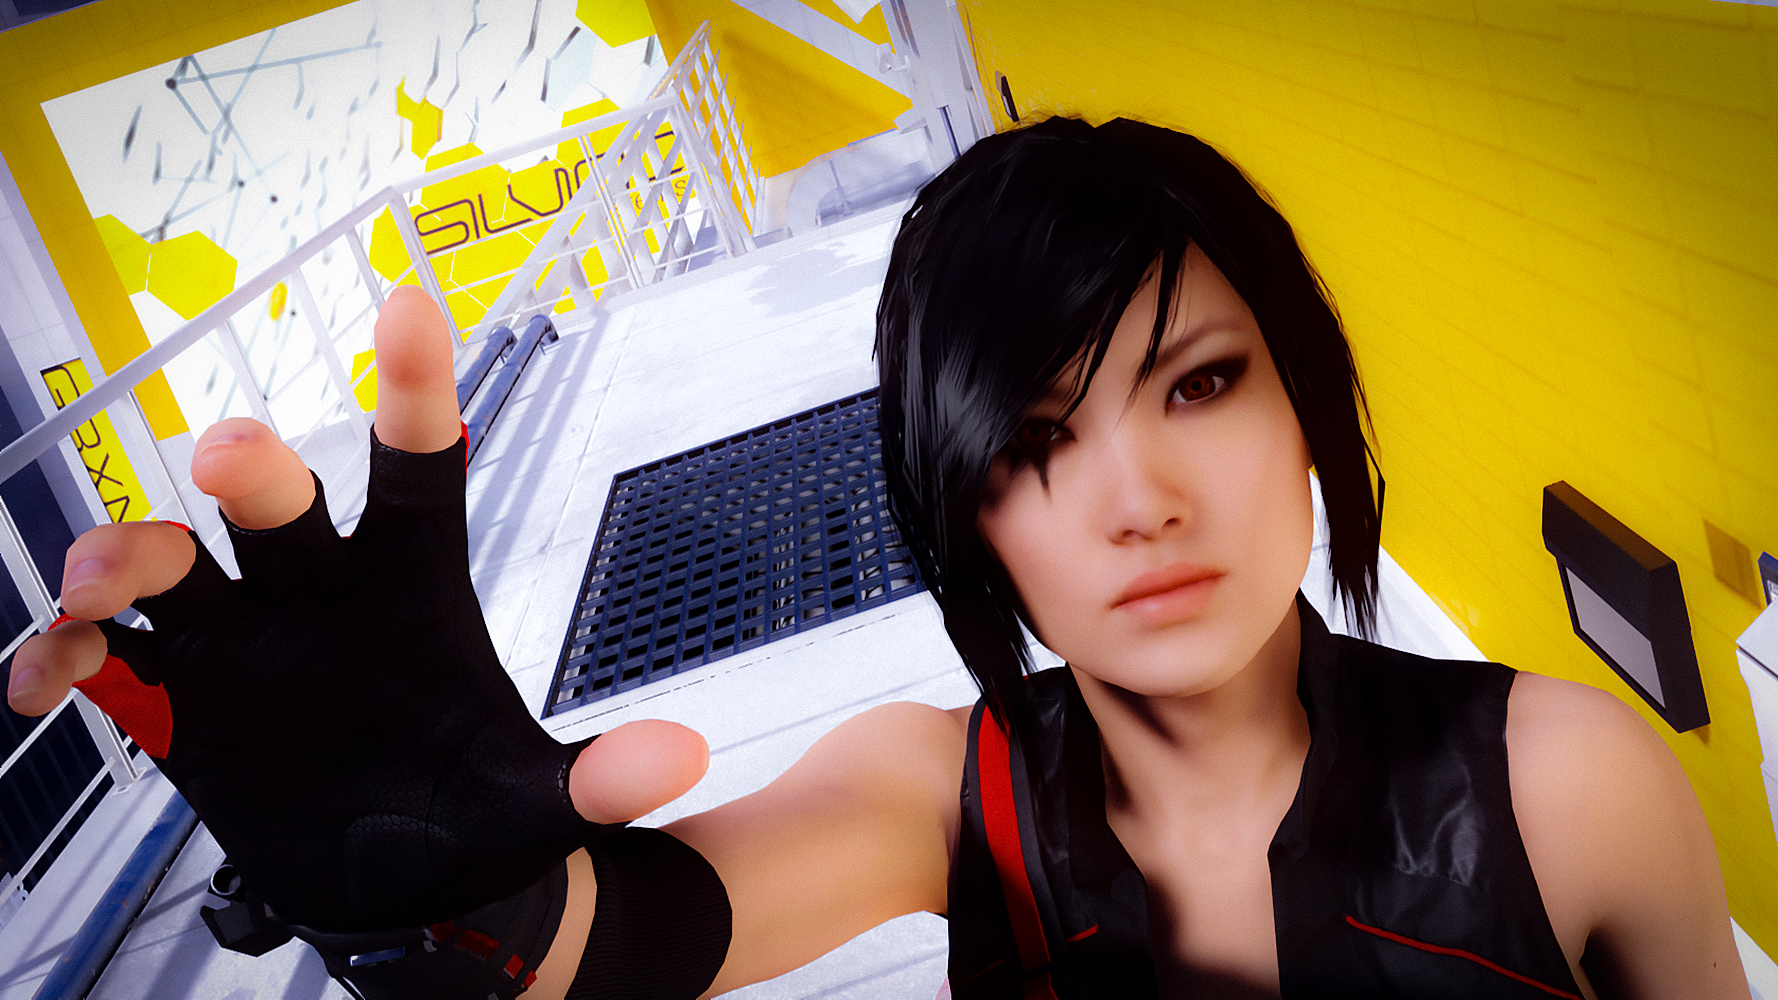 Catalyst - Mirror's Edge Catalyst teg